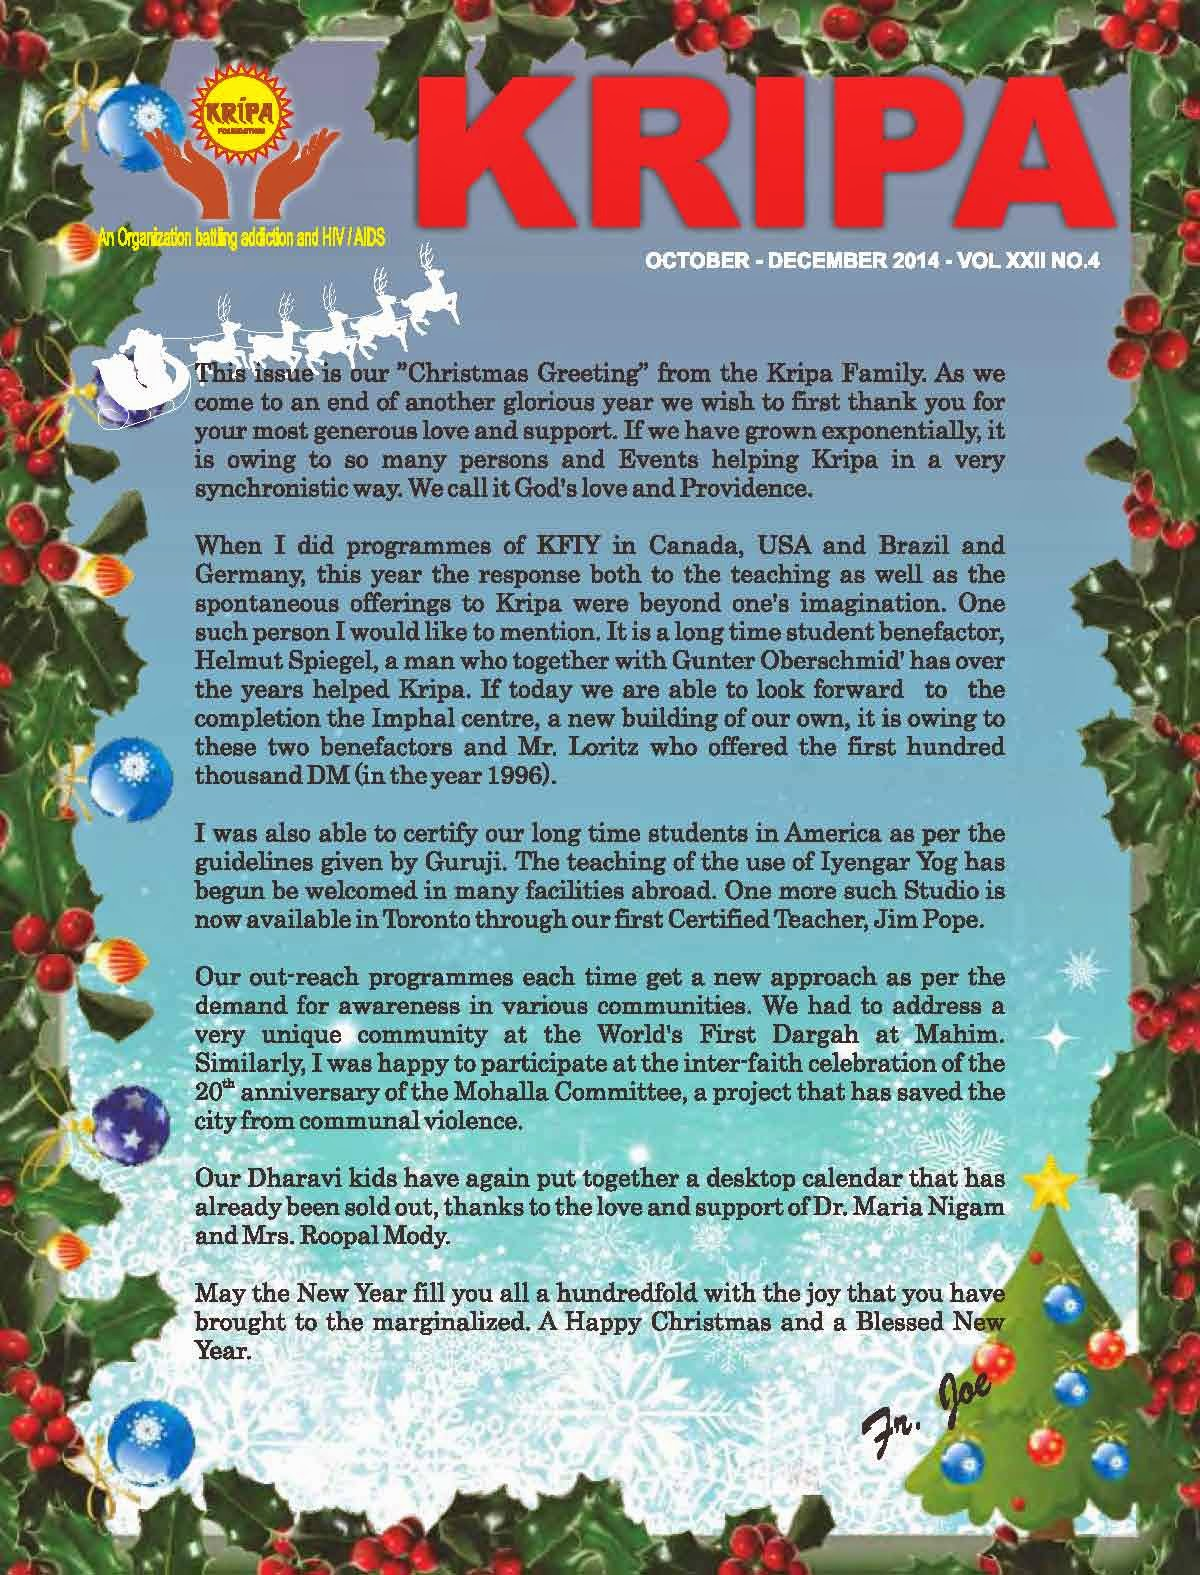 Kripa Foundation India Fr Joes Christmas Greetings And Wishes